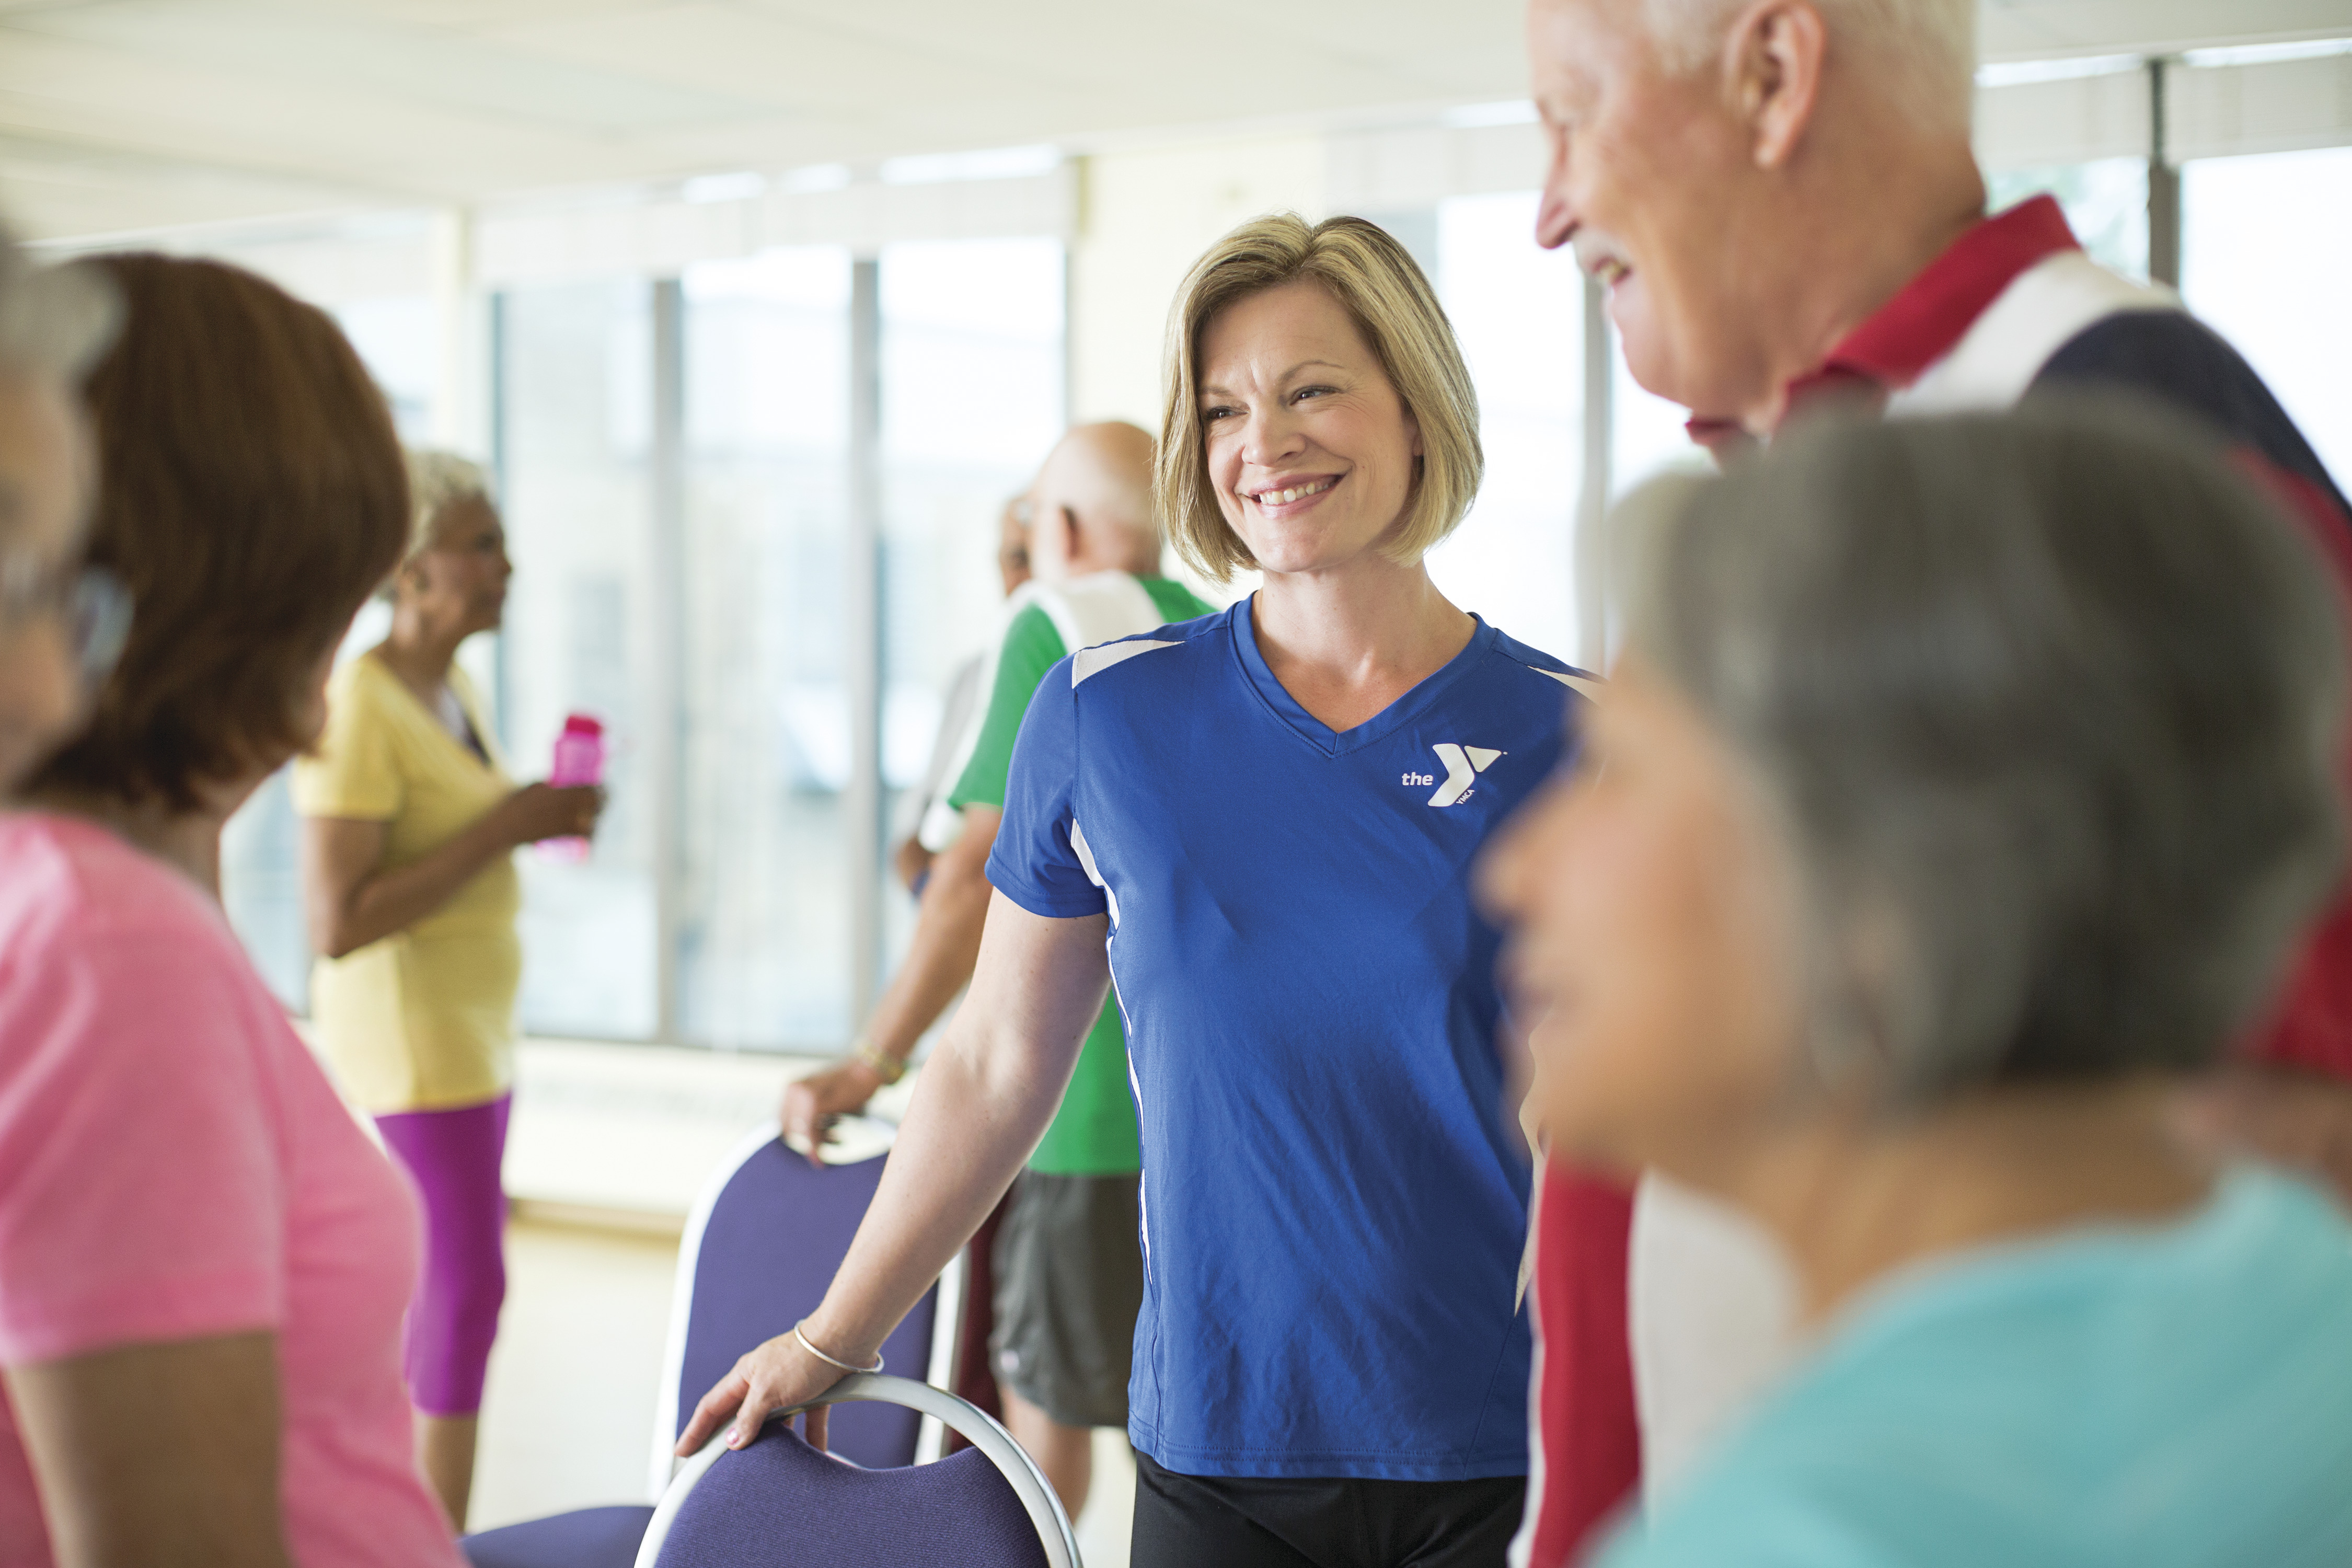 The Ymca Center For Healthy Living